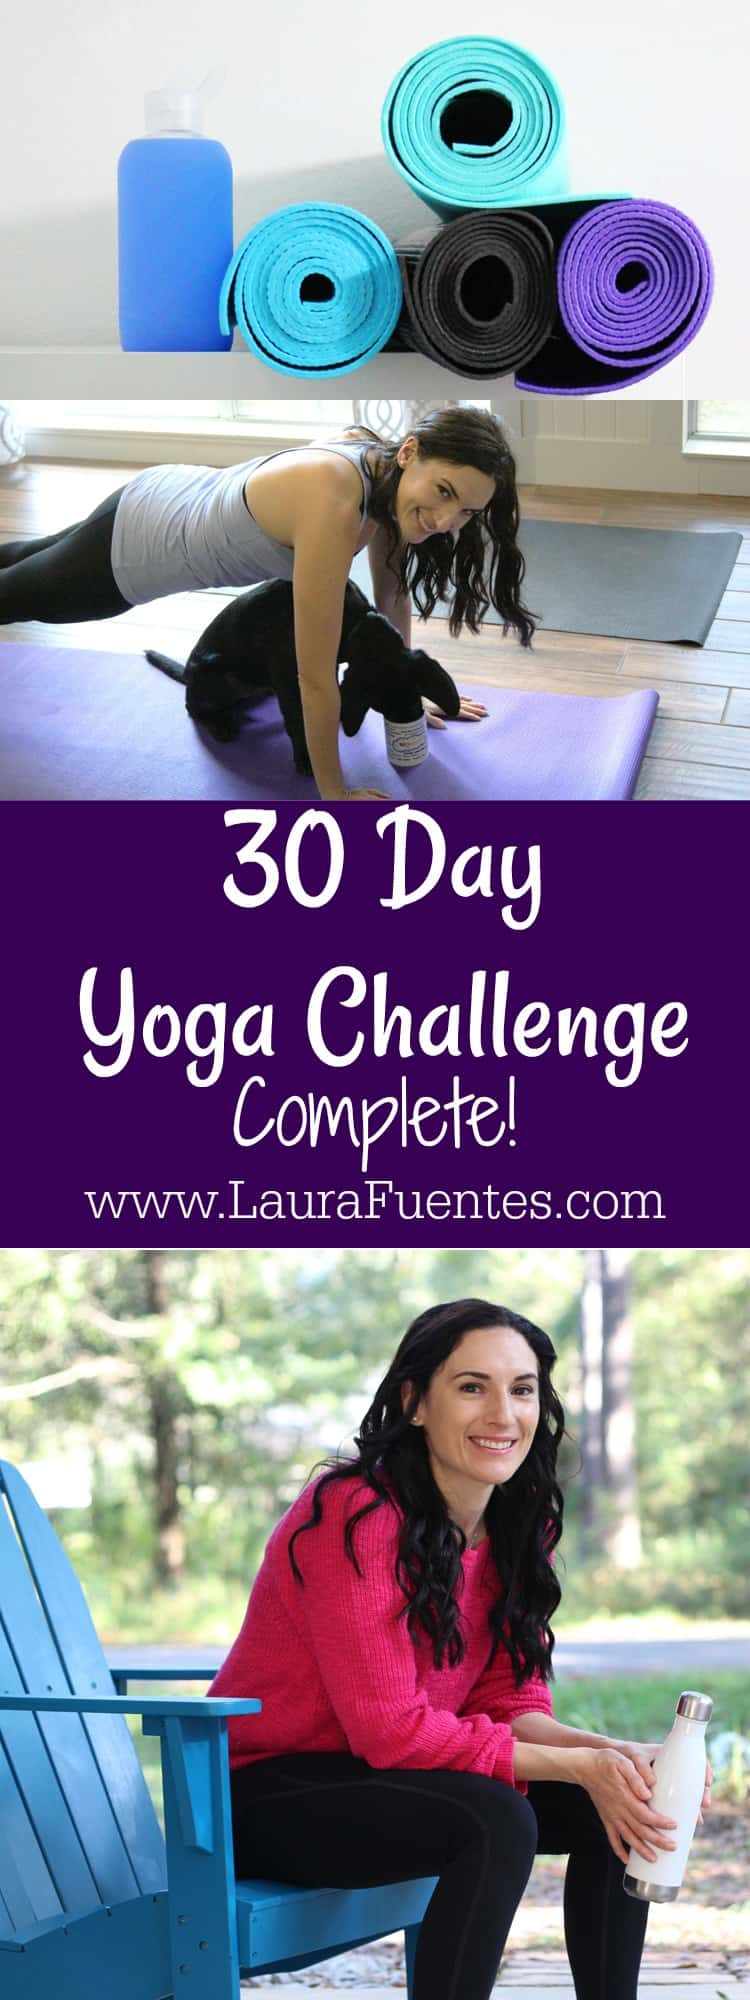 Yoga Challenge Compete! 30-days of yoga didn't quite go as planned, but can I touch my toes? Yes! Check out how I completed my 30-day Yoga Challenge for September. #yoga #fitmom